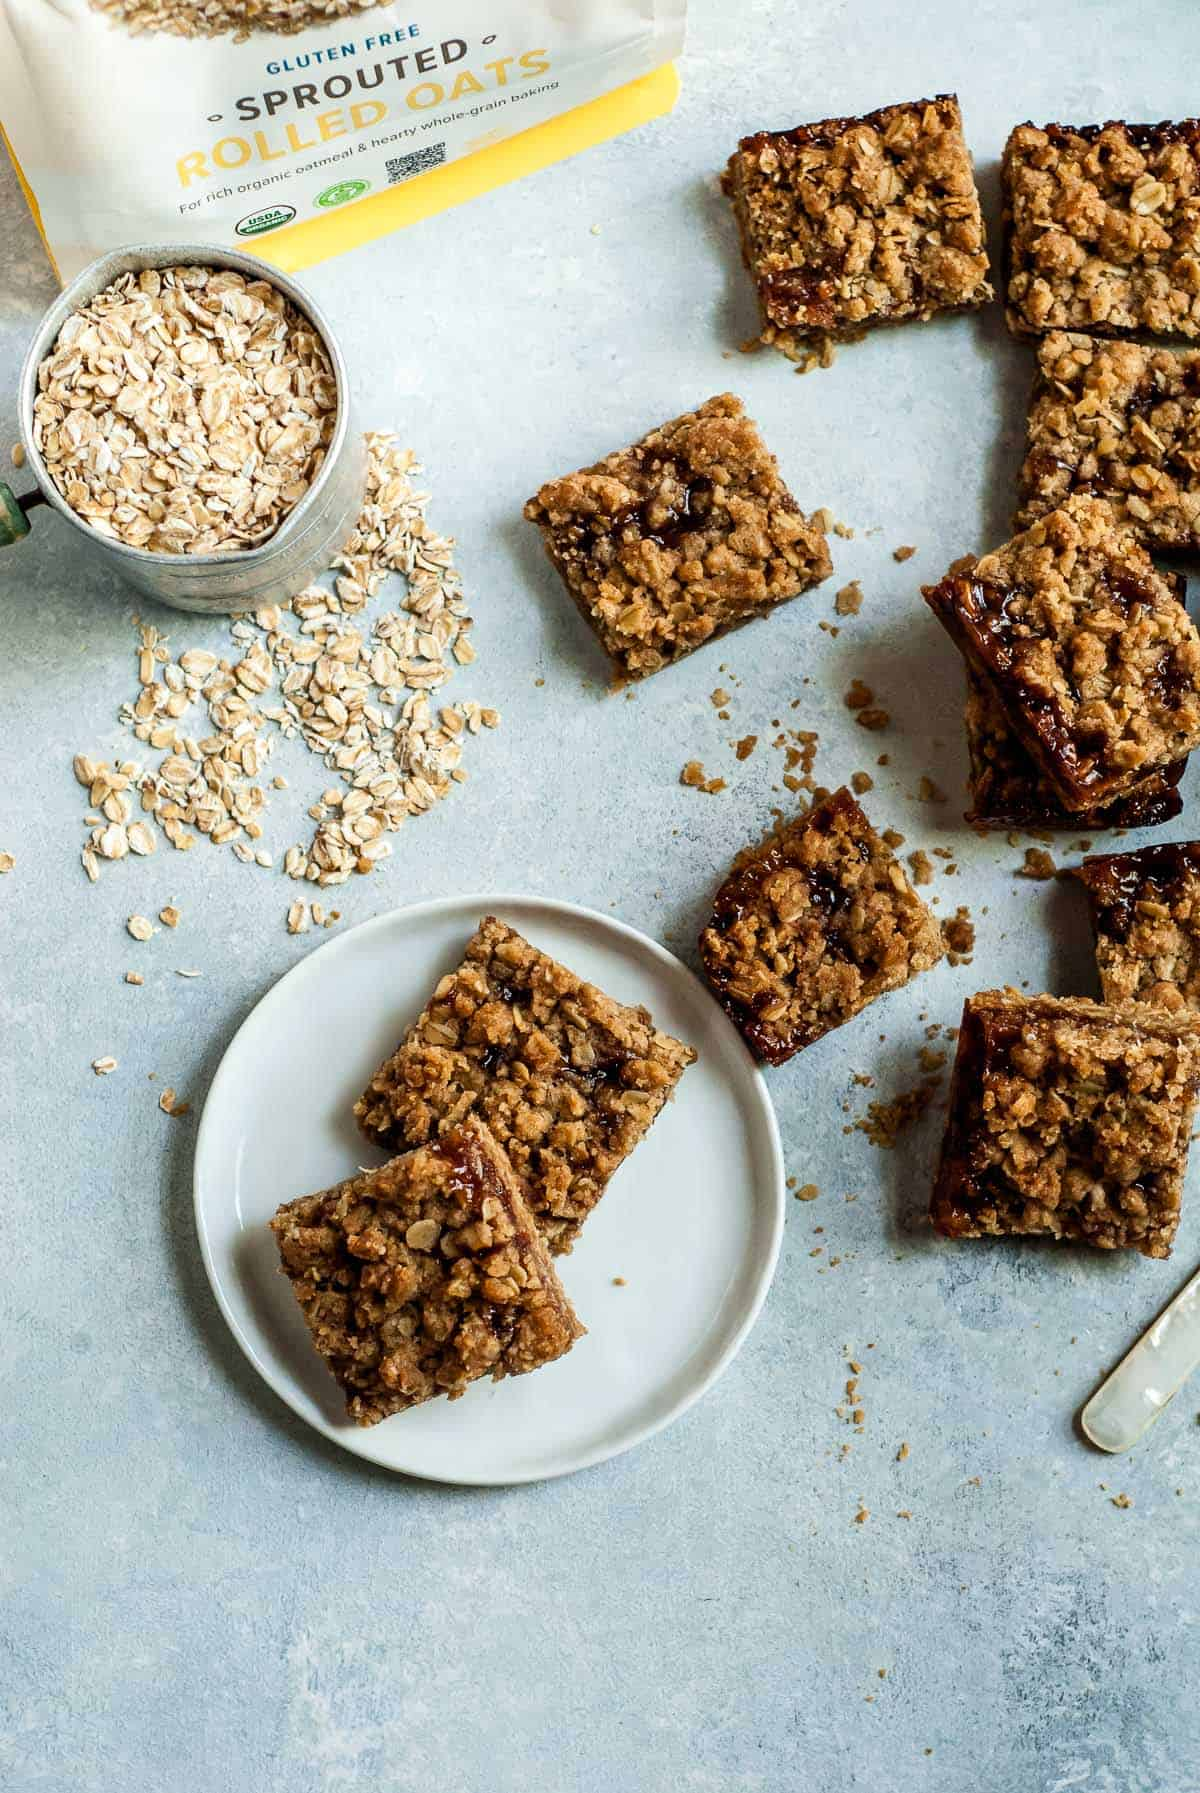 cherry crumble bars with oats and knife